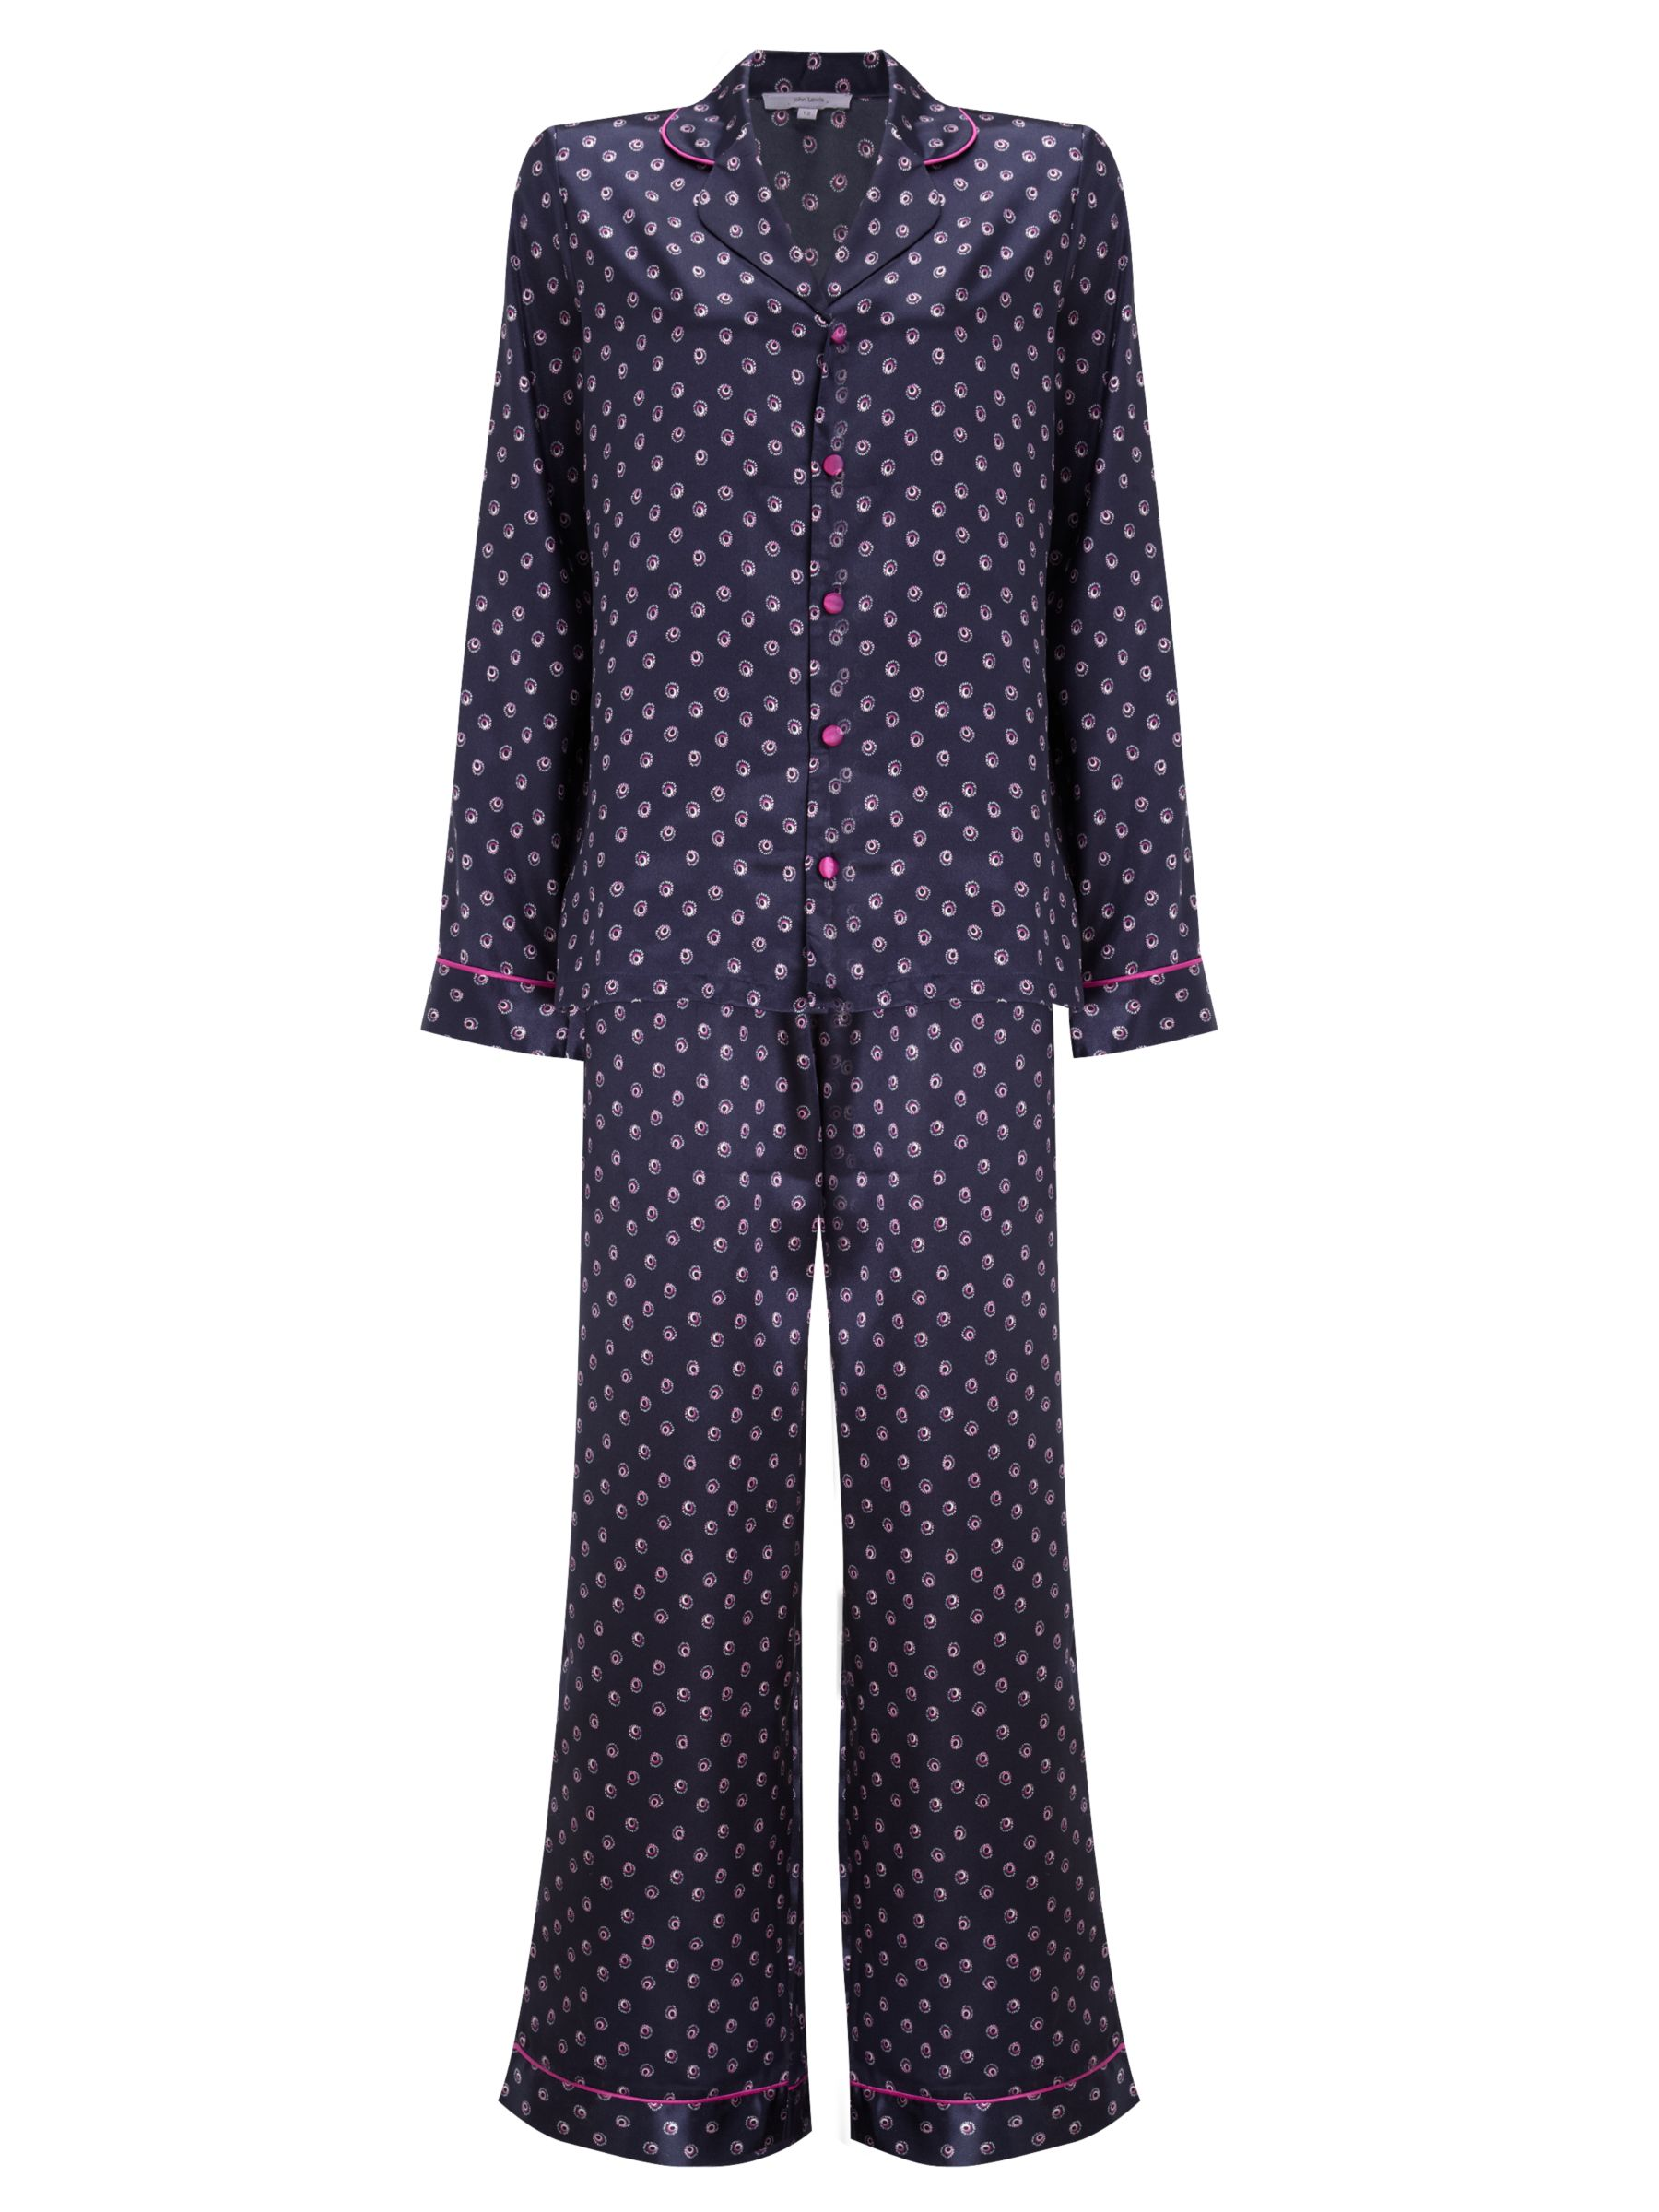 John Lewis Feathered Dot Pyjama Gift Set, Navy